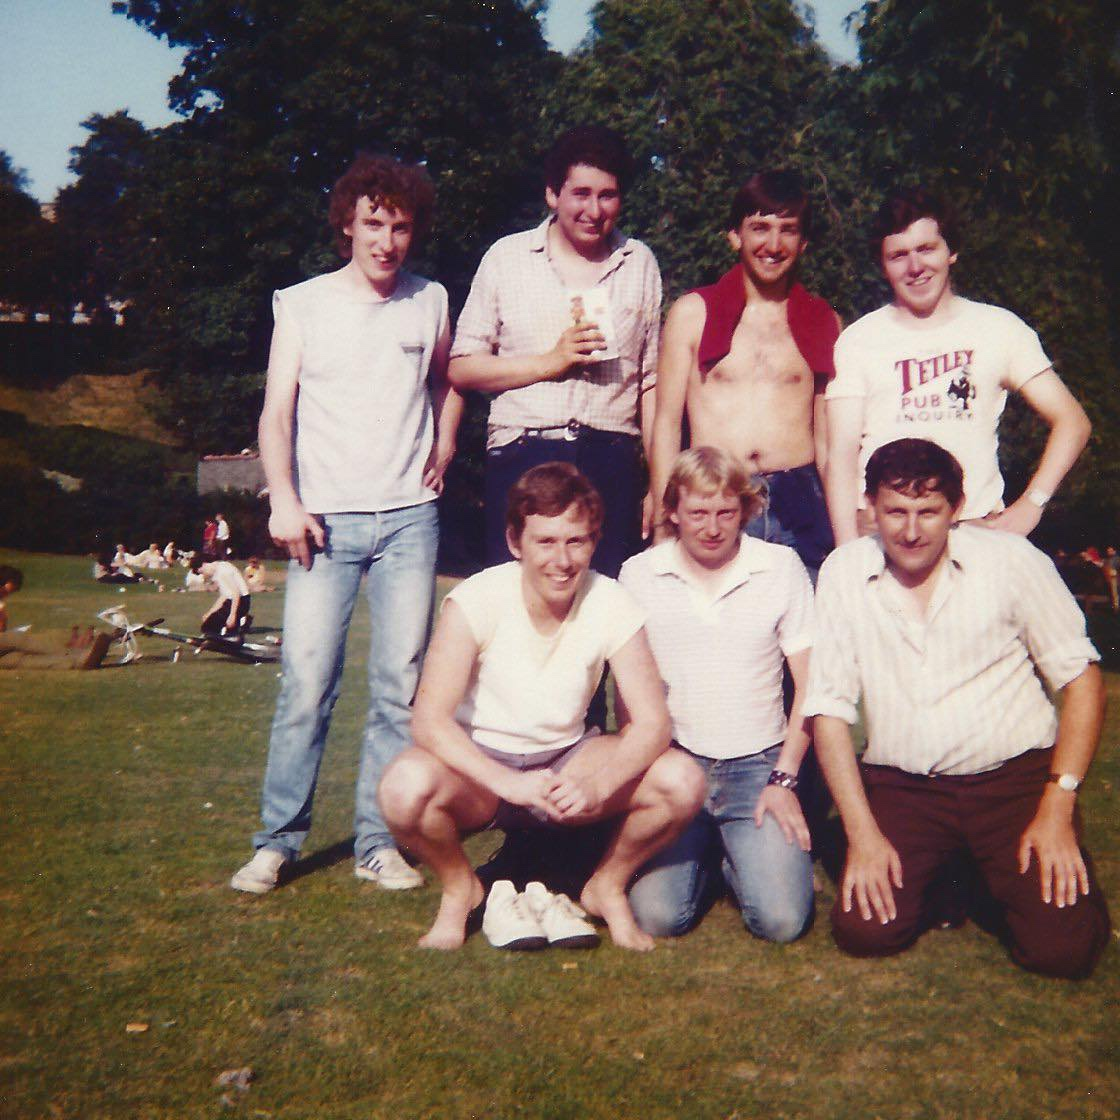 Dave pictured with friends in Edinburgh for Leeds' pre-season in 1983.